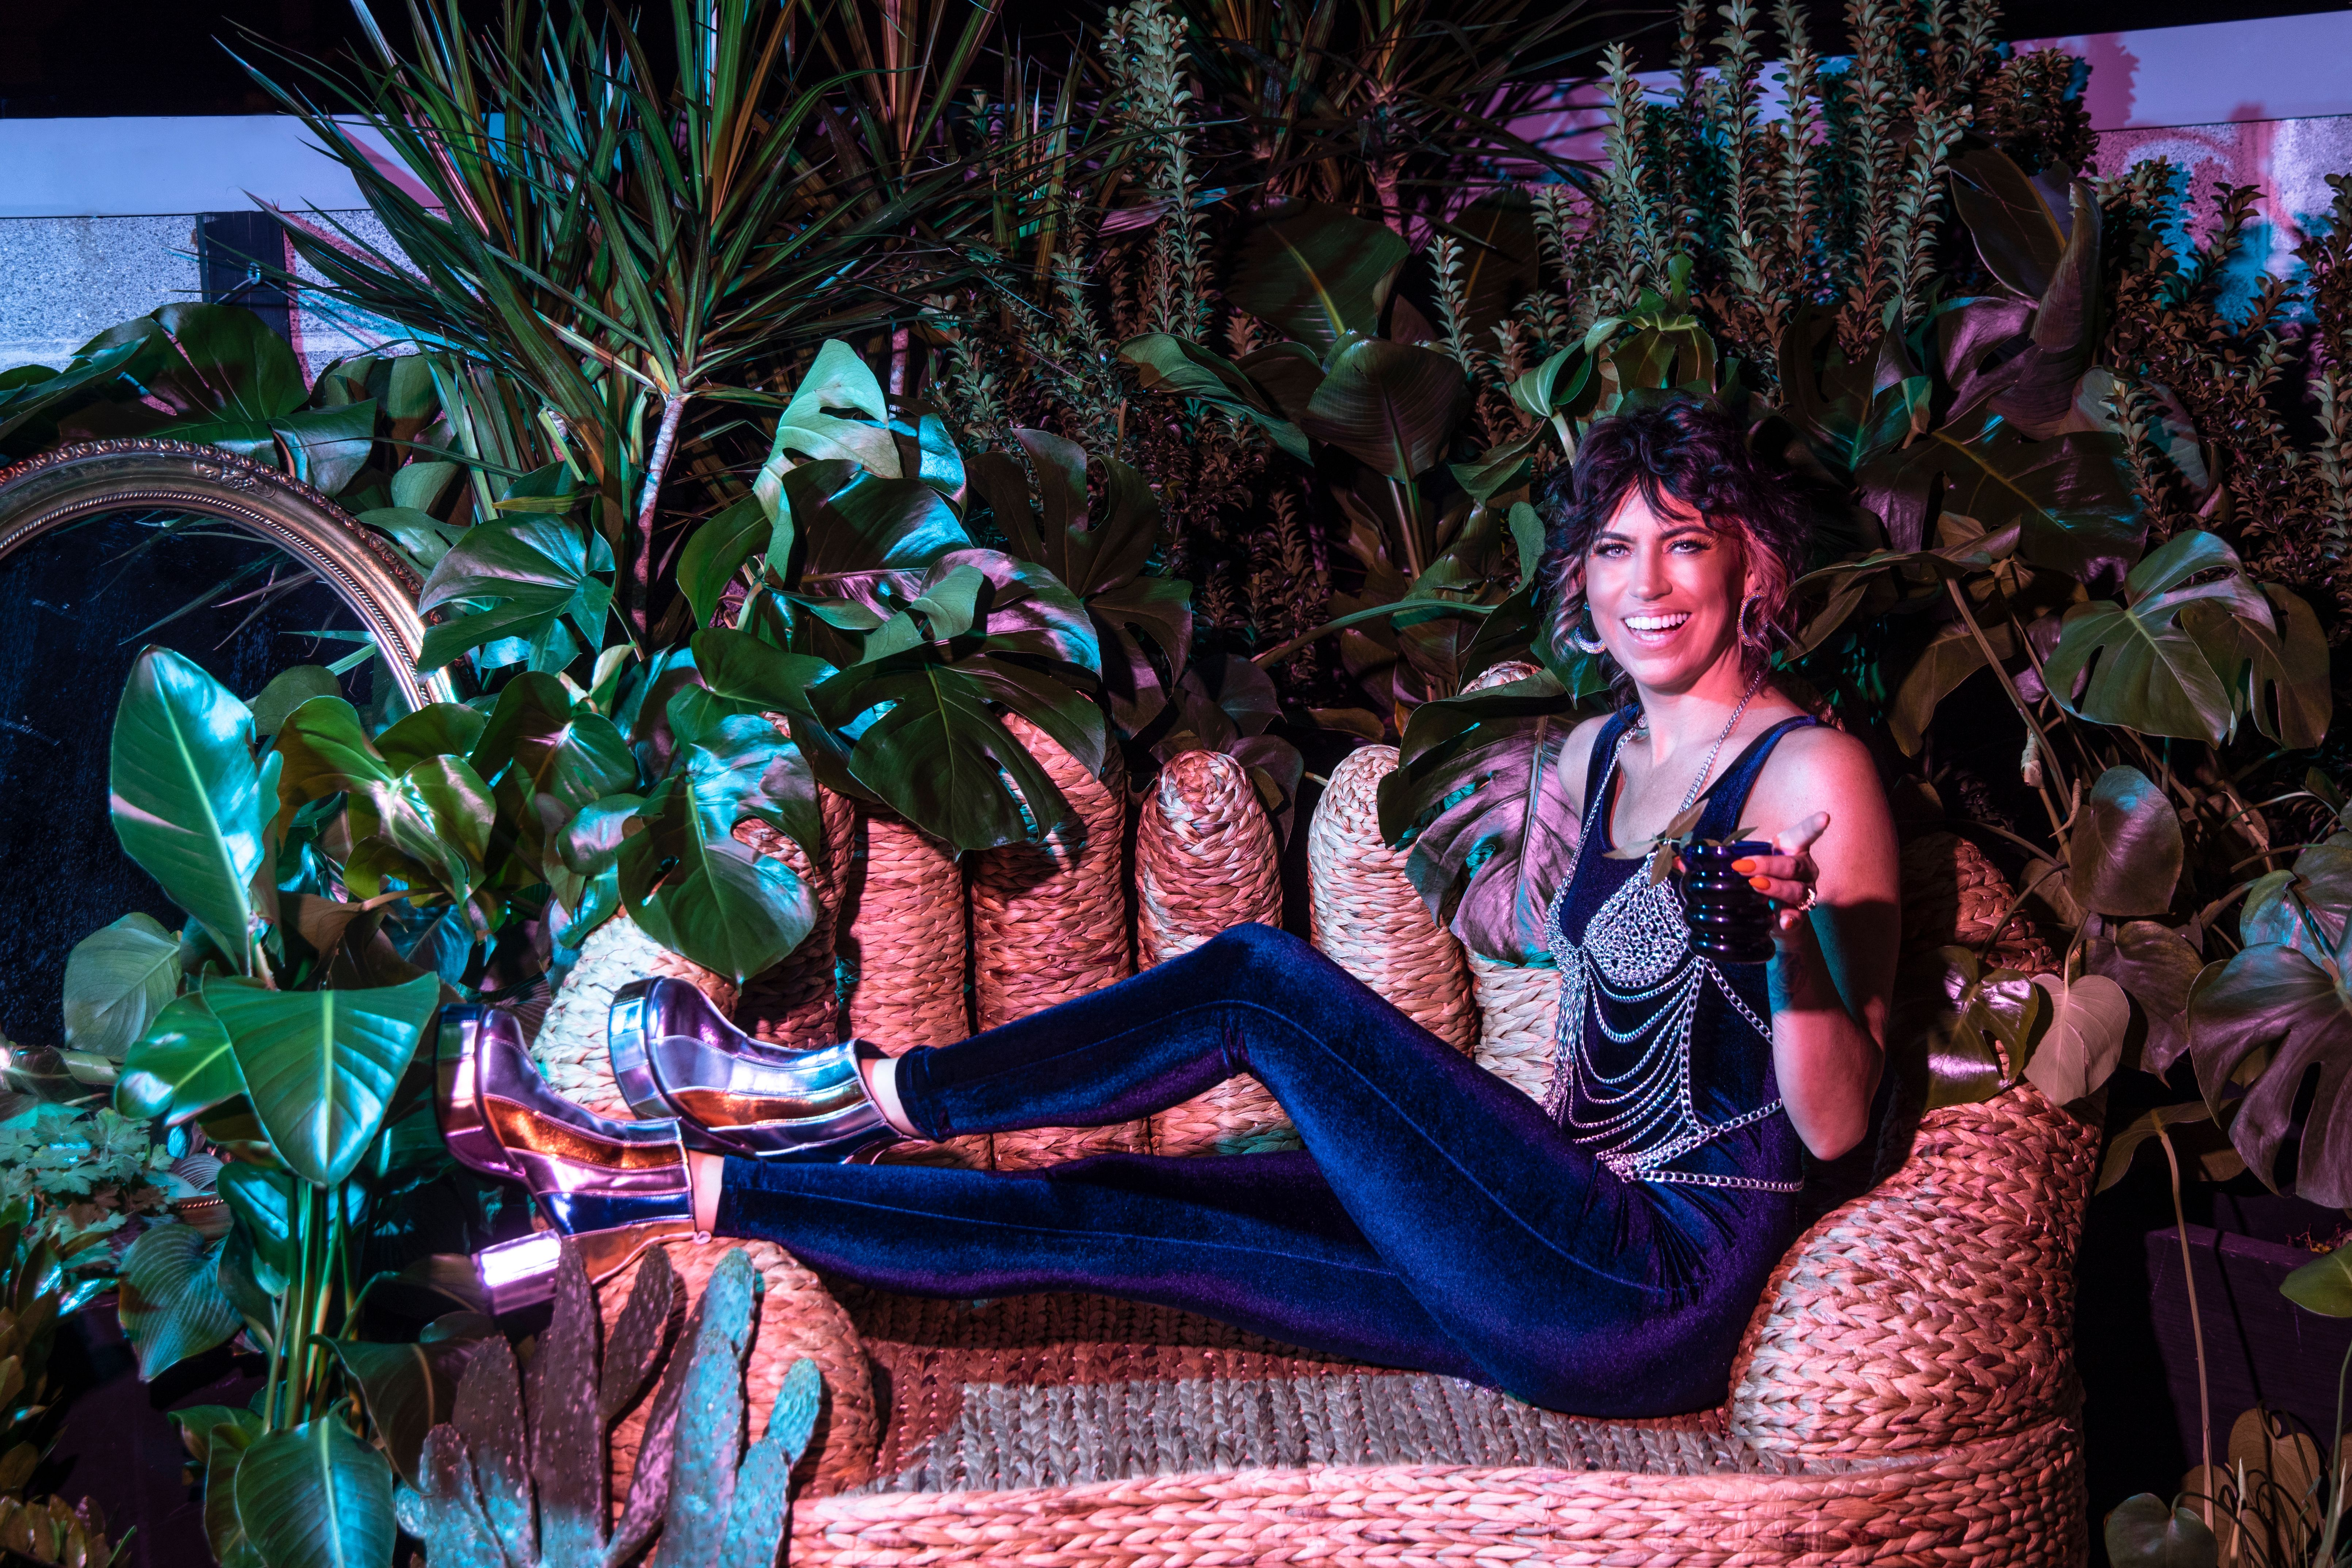 Maria Bastasch poses for a photo on a chais lounge.